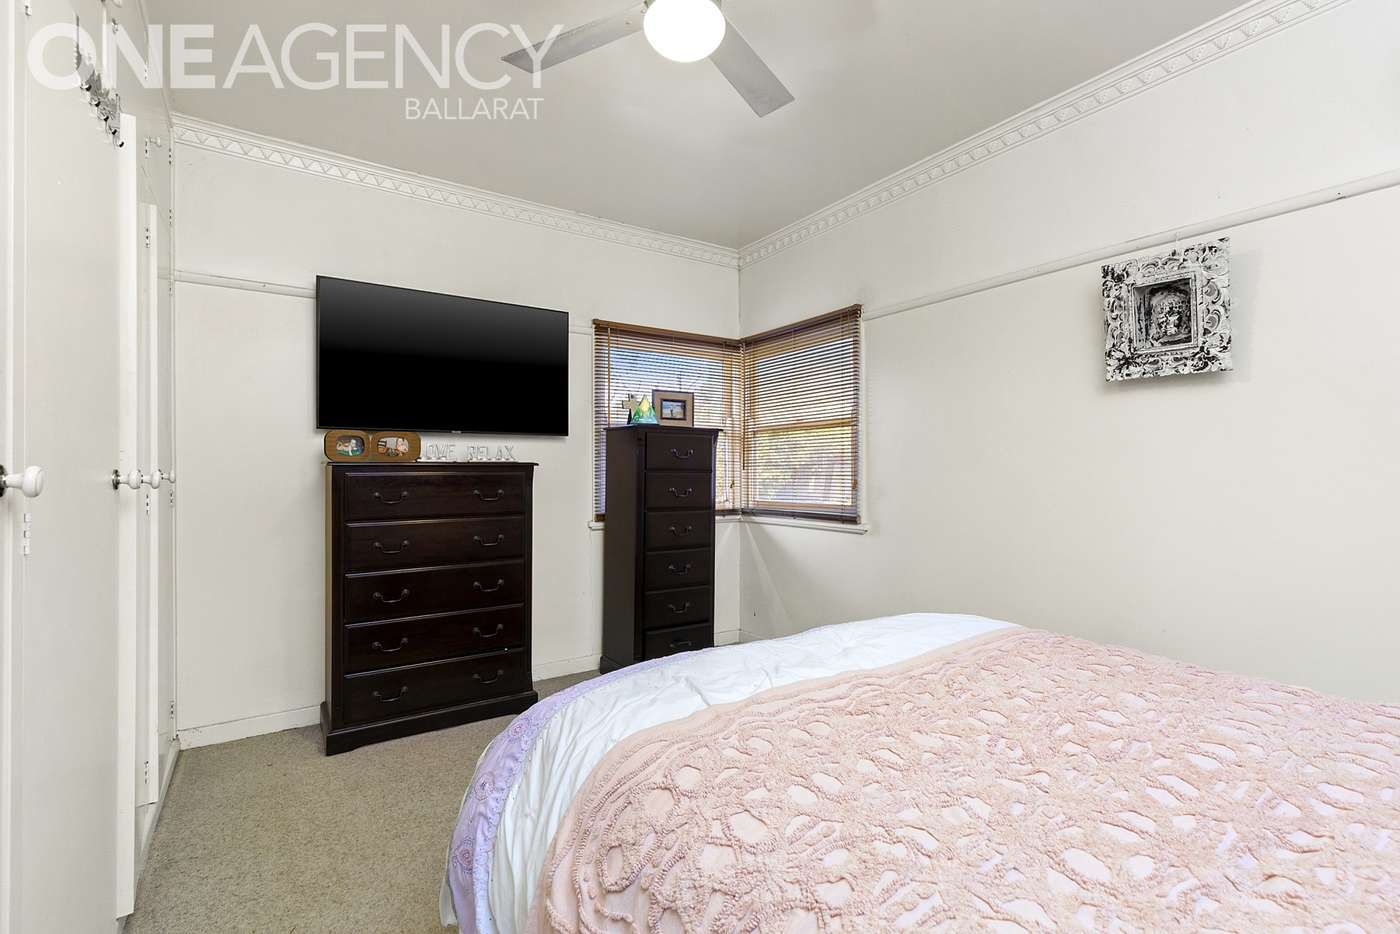 Sixth view of Homely house listing, 515 Norman Street, Ballarat North VIC 3350